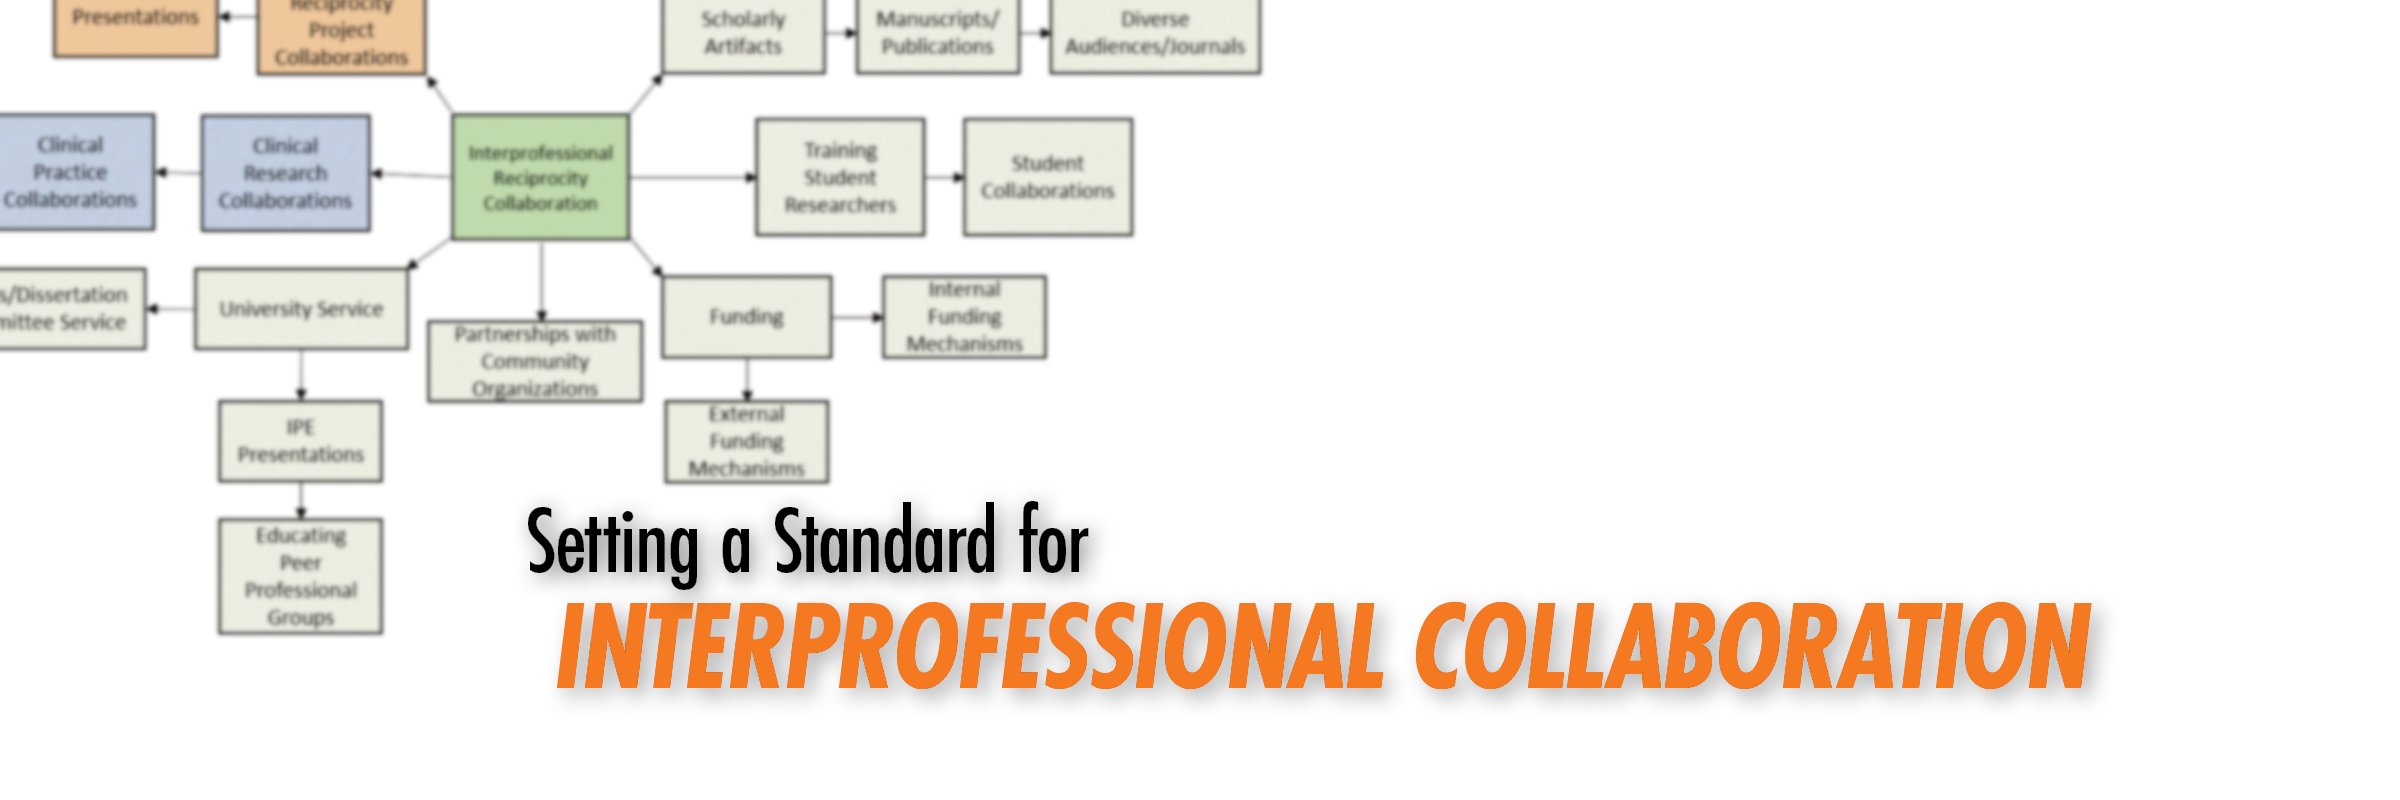 Setting a Standard for Interprofessional Collaboration